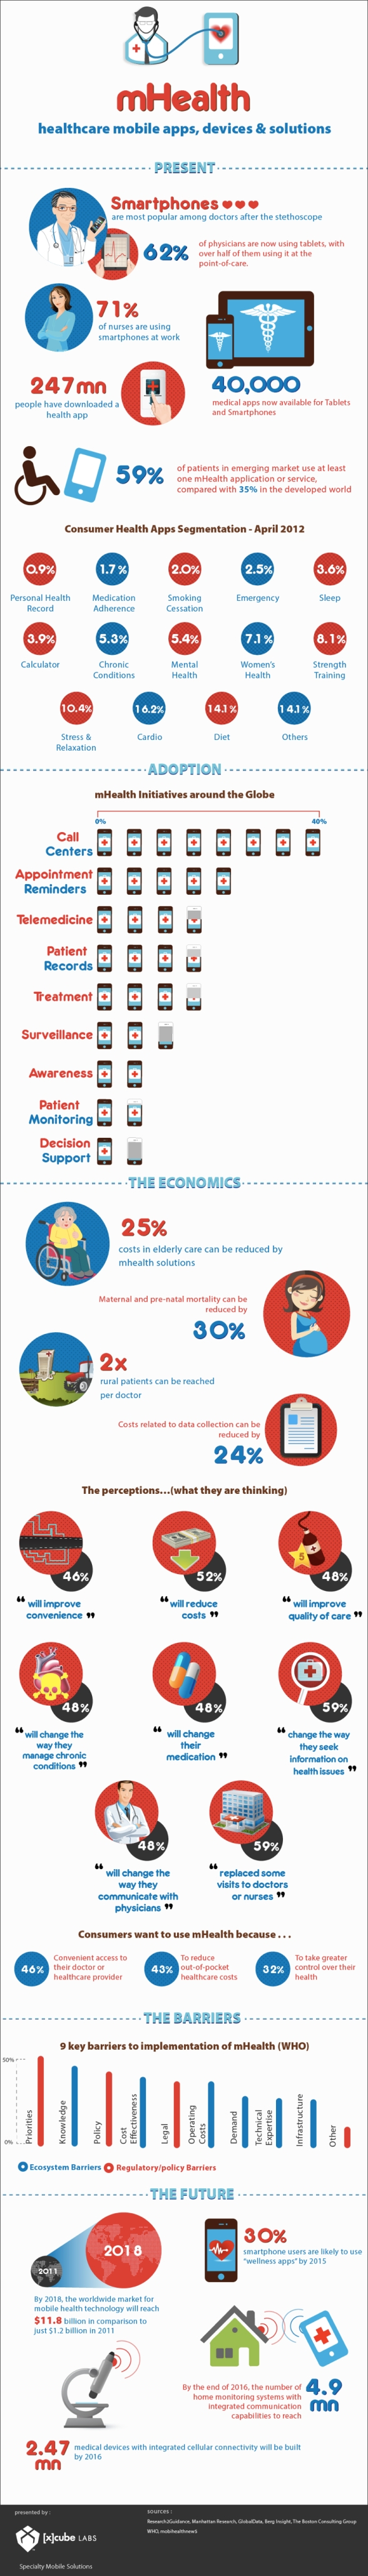 mhealth_infographic_large